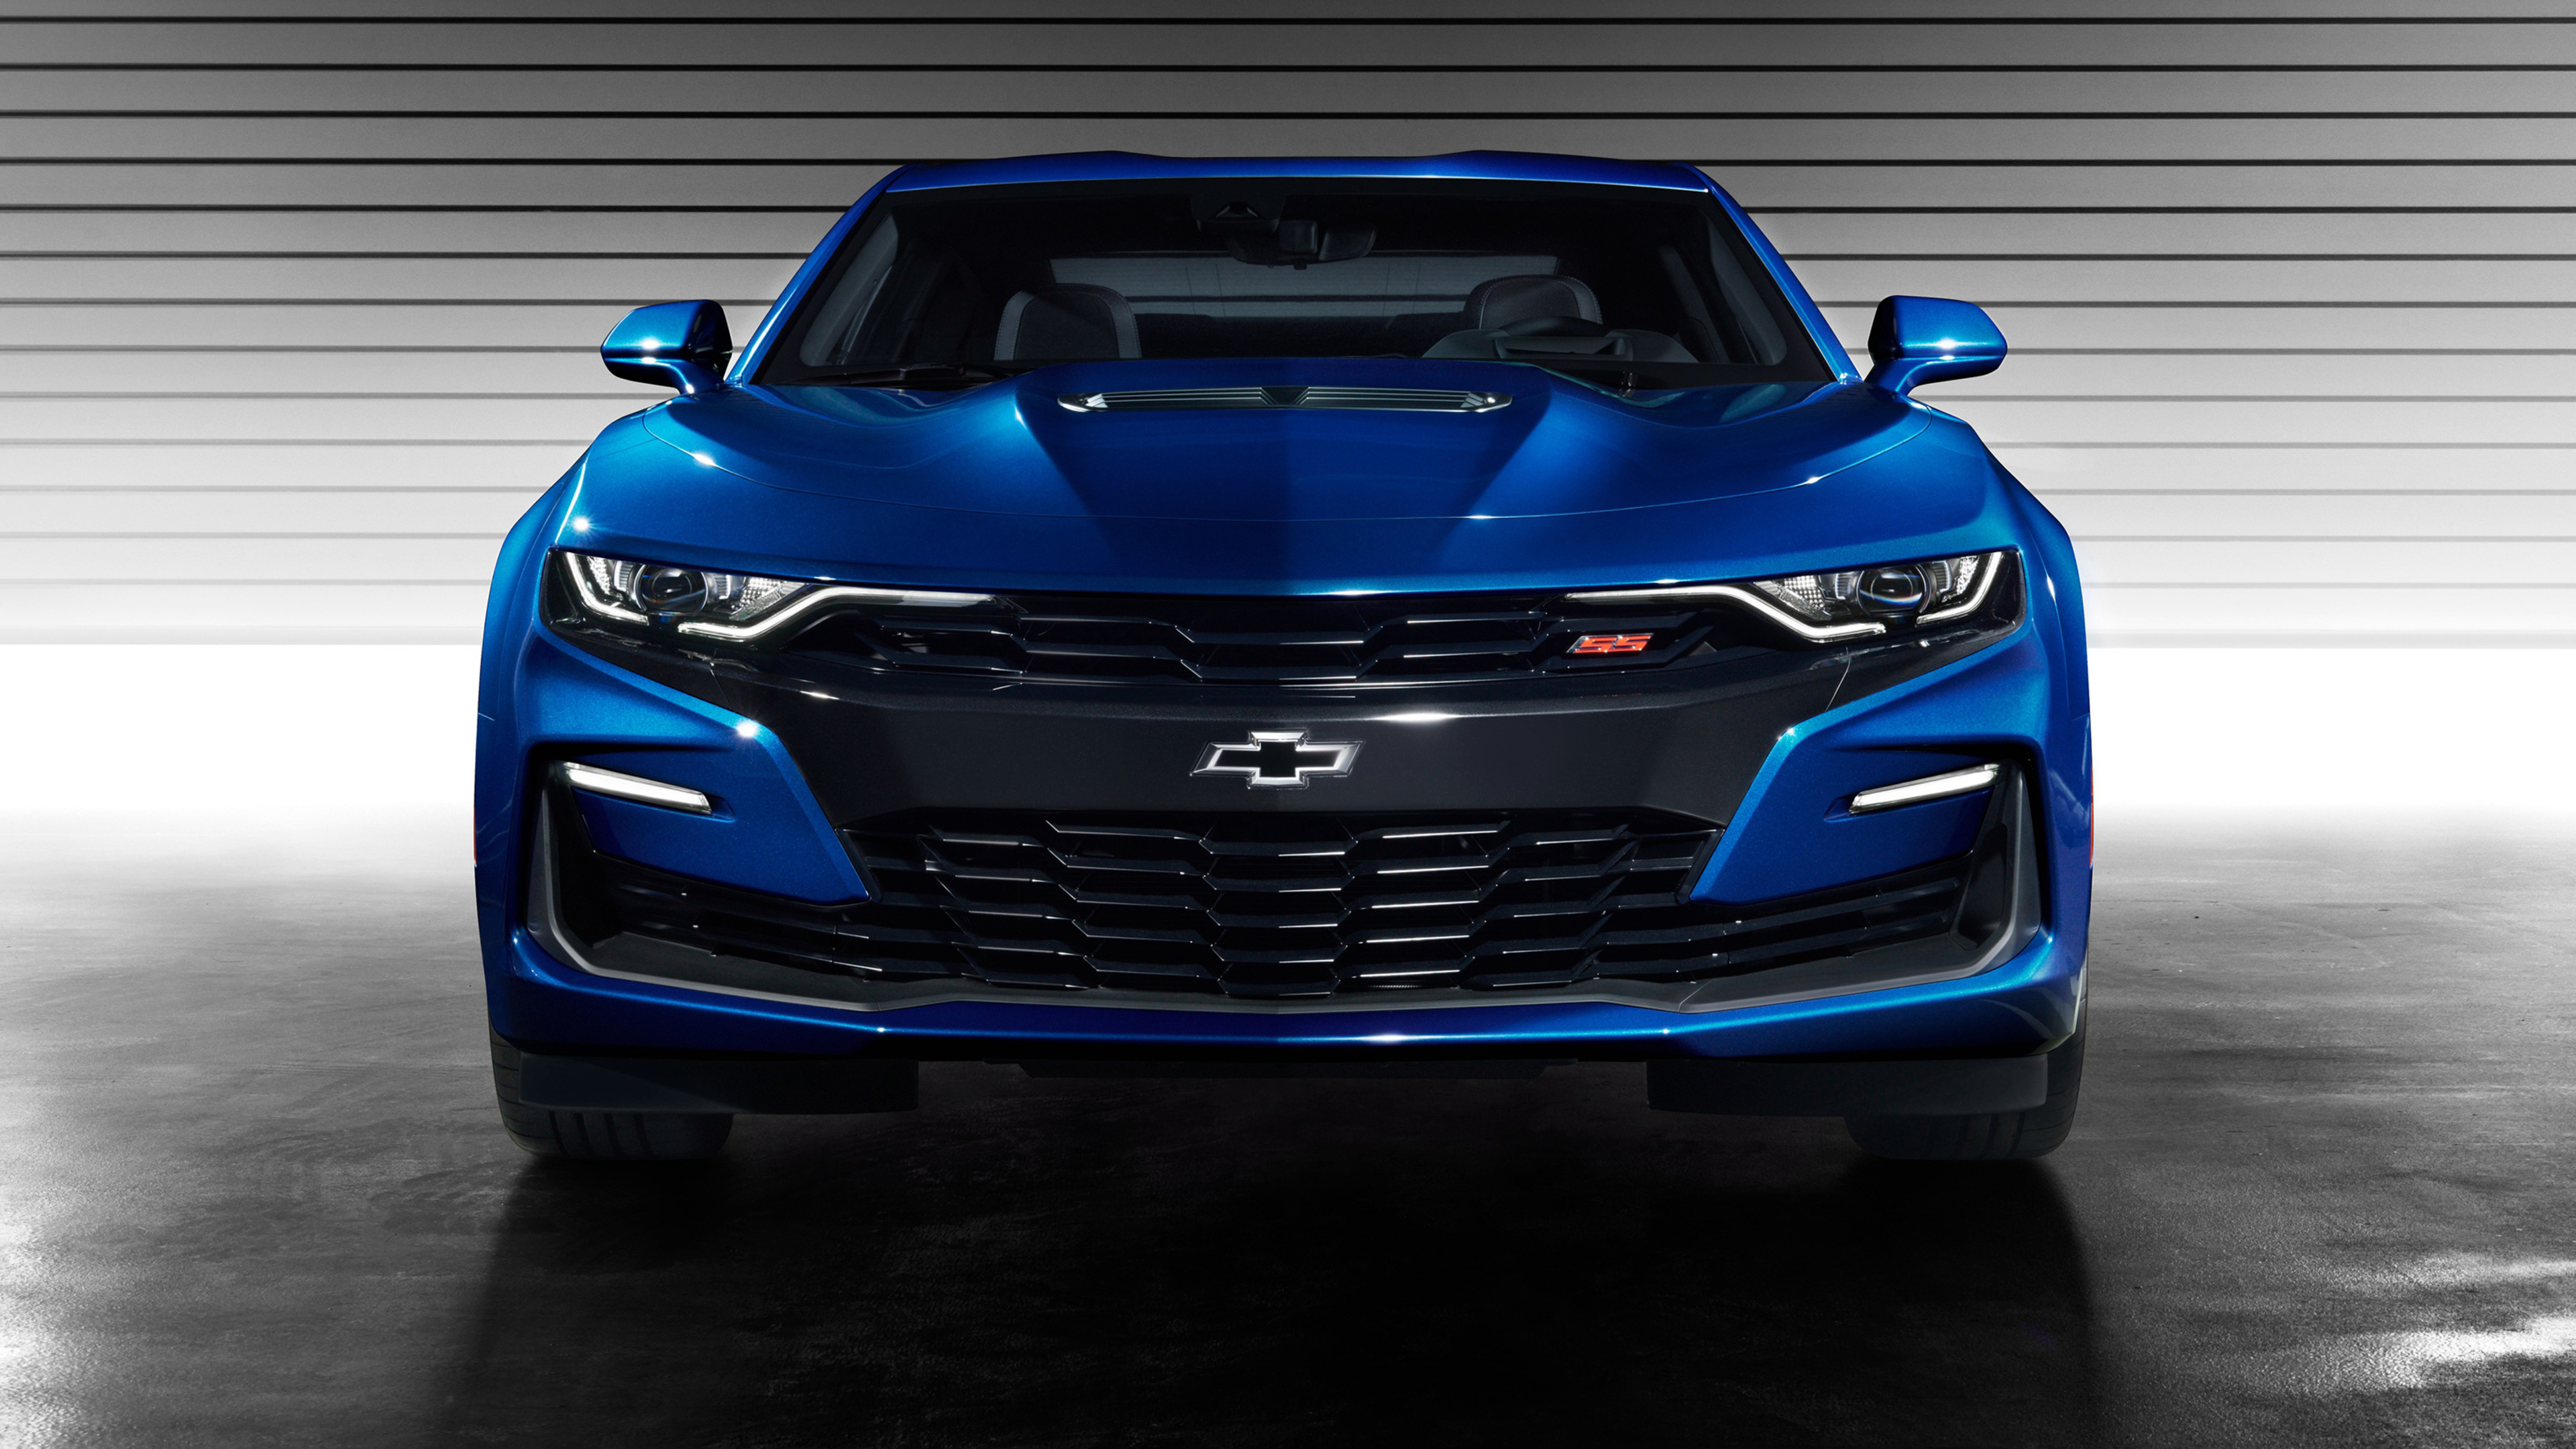 chevrolet camaro ss 2018 front 1539110637 - Chevrolet Camaro SS 2018 Front - hd-wallpapers, chevrolet wallpapers, chevrolet camaro wallpapers, cars wallpapers, 4k-wallpapers, 2018 cars wallpapers